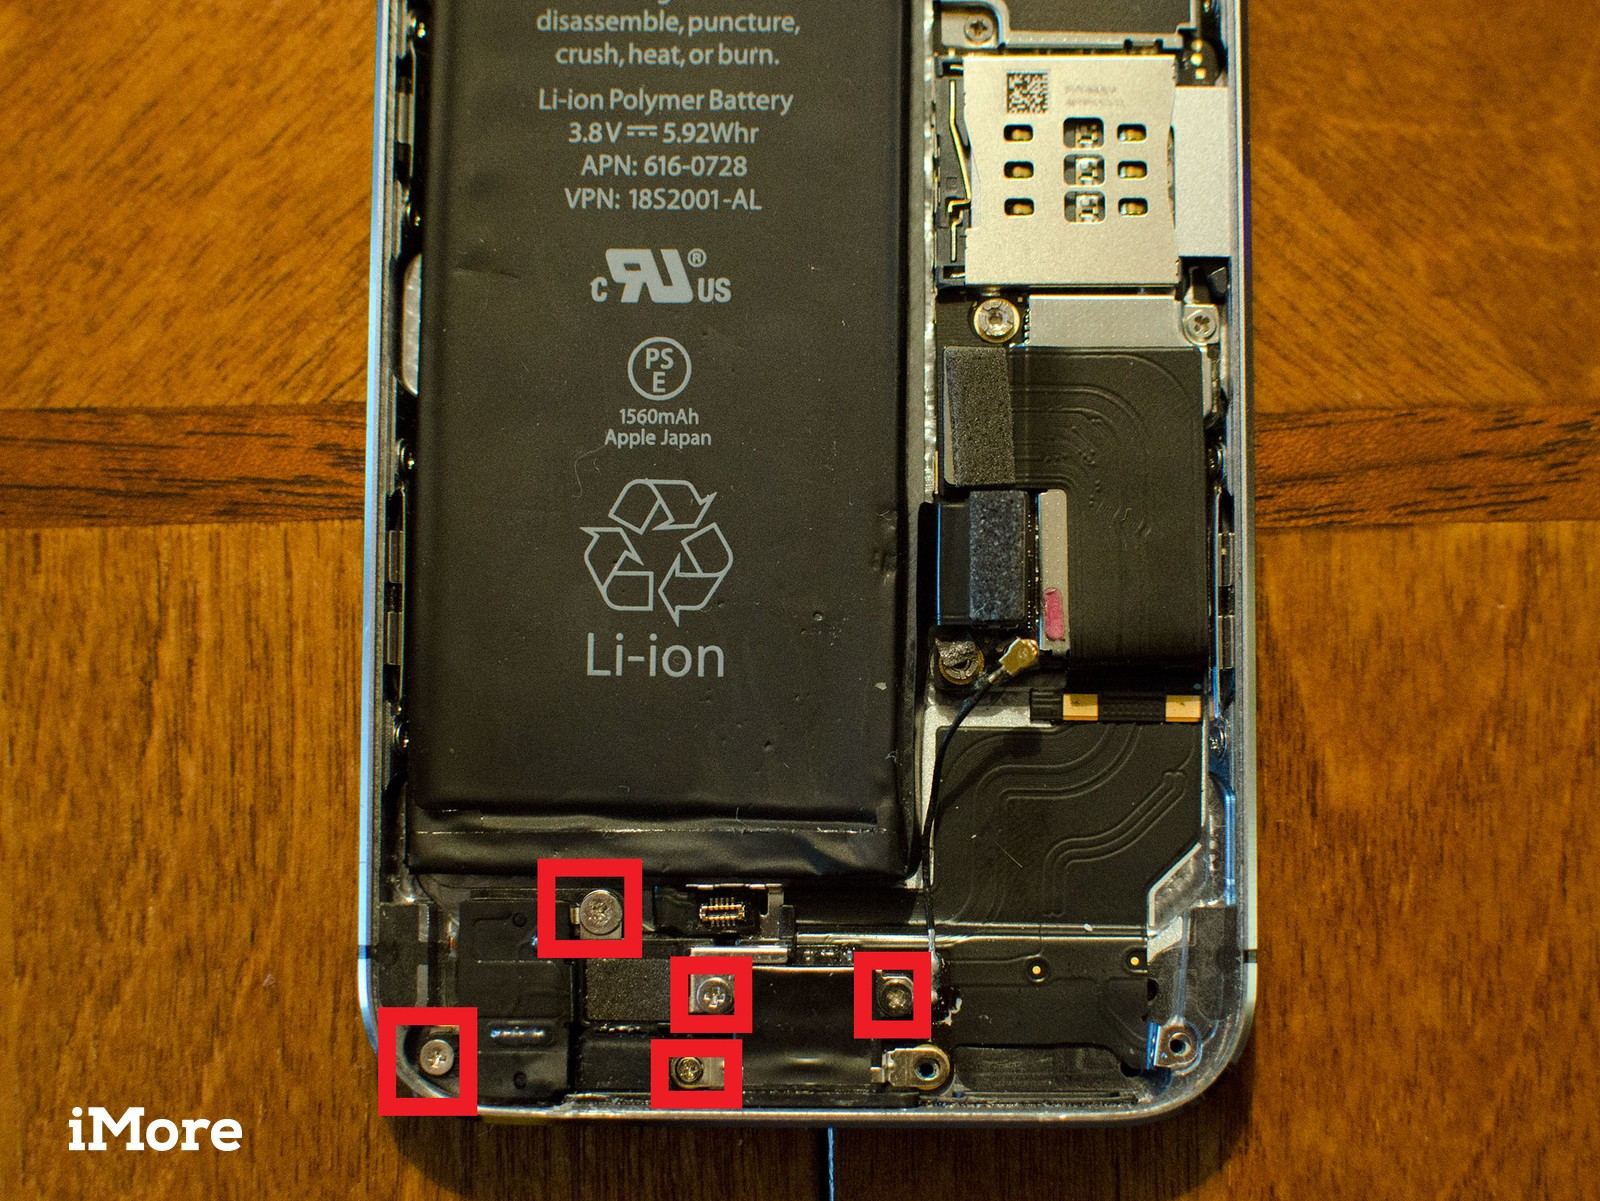 How to replace a broken Lightning dock in an iPhone 5s